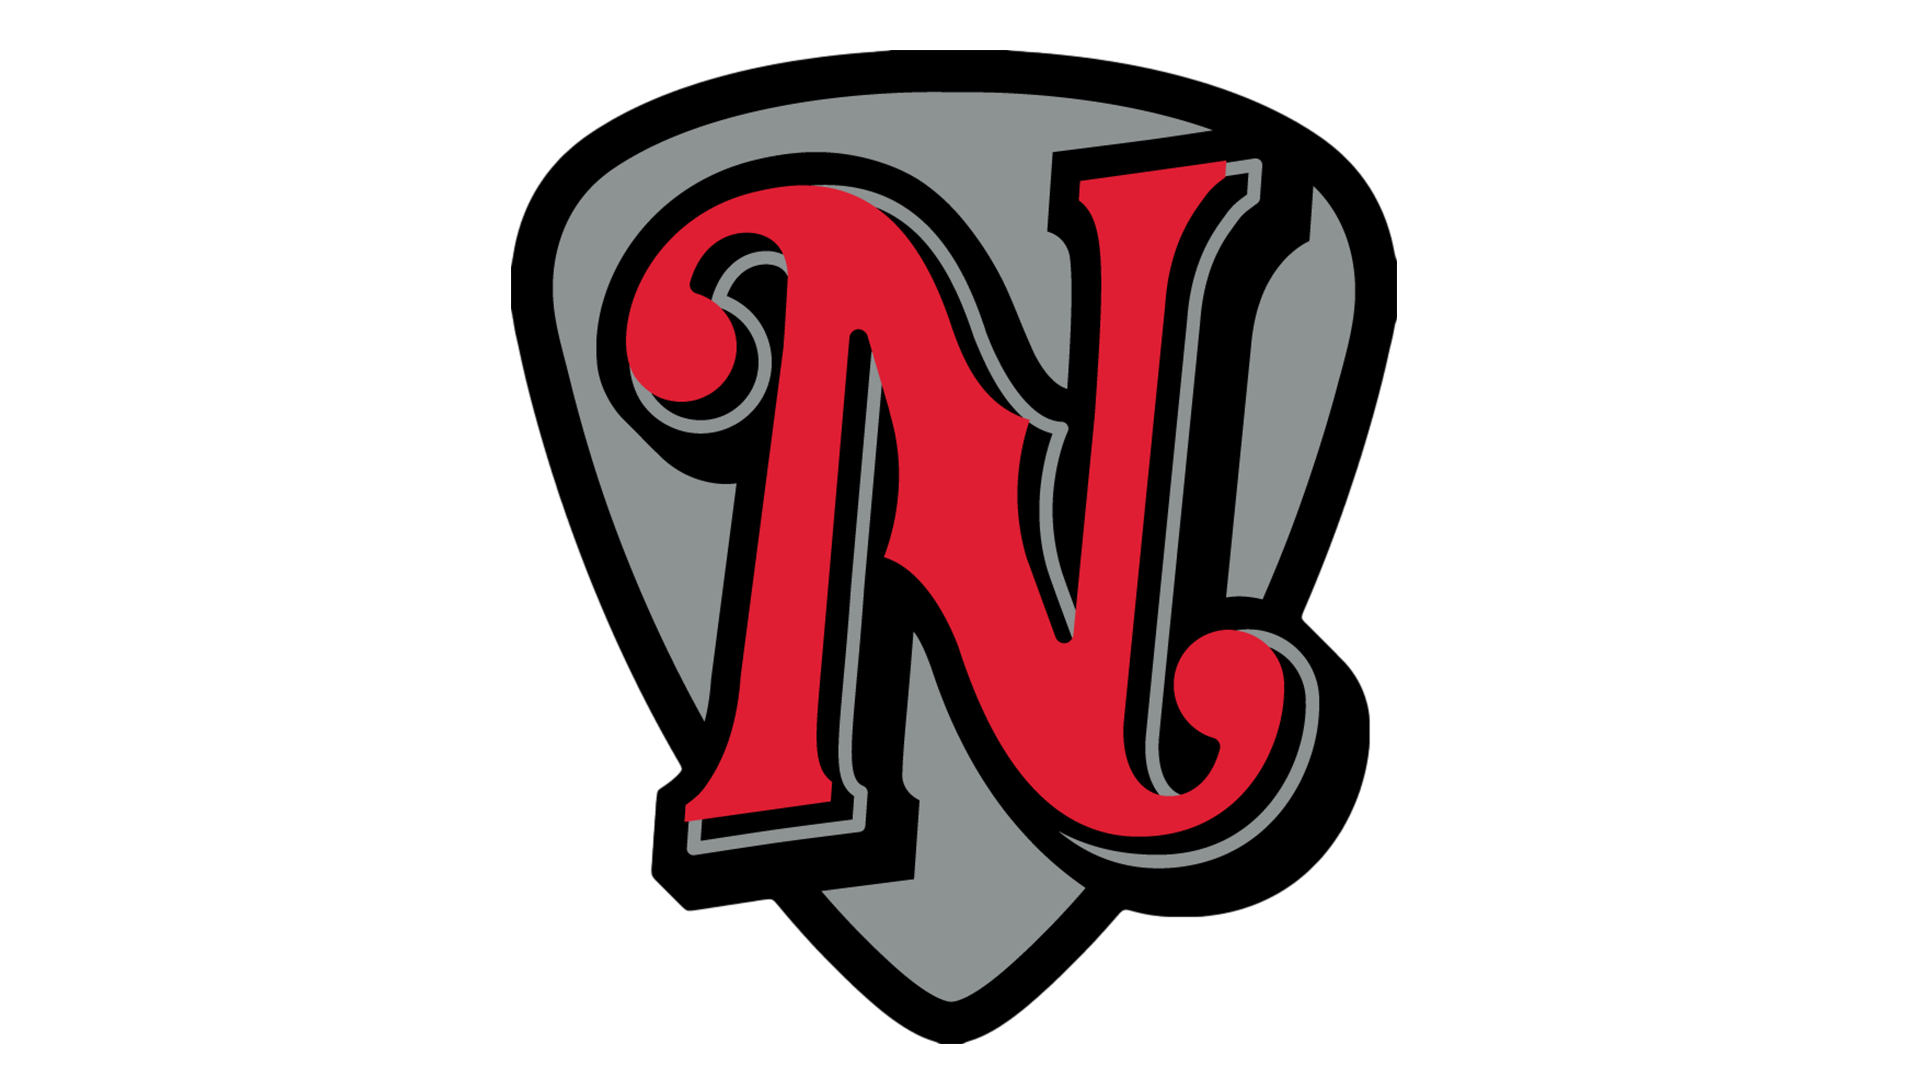 Meaning Nashville Sounds logo and symbol.